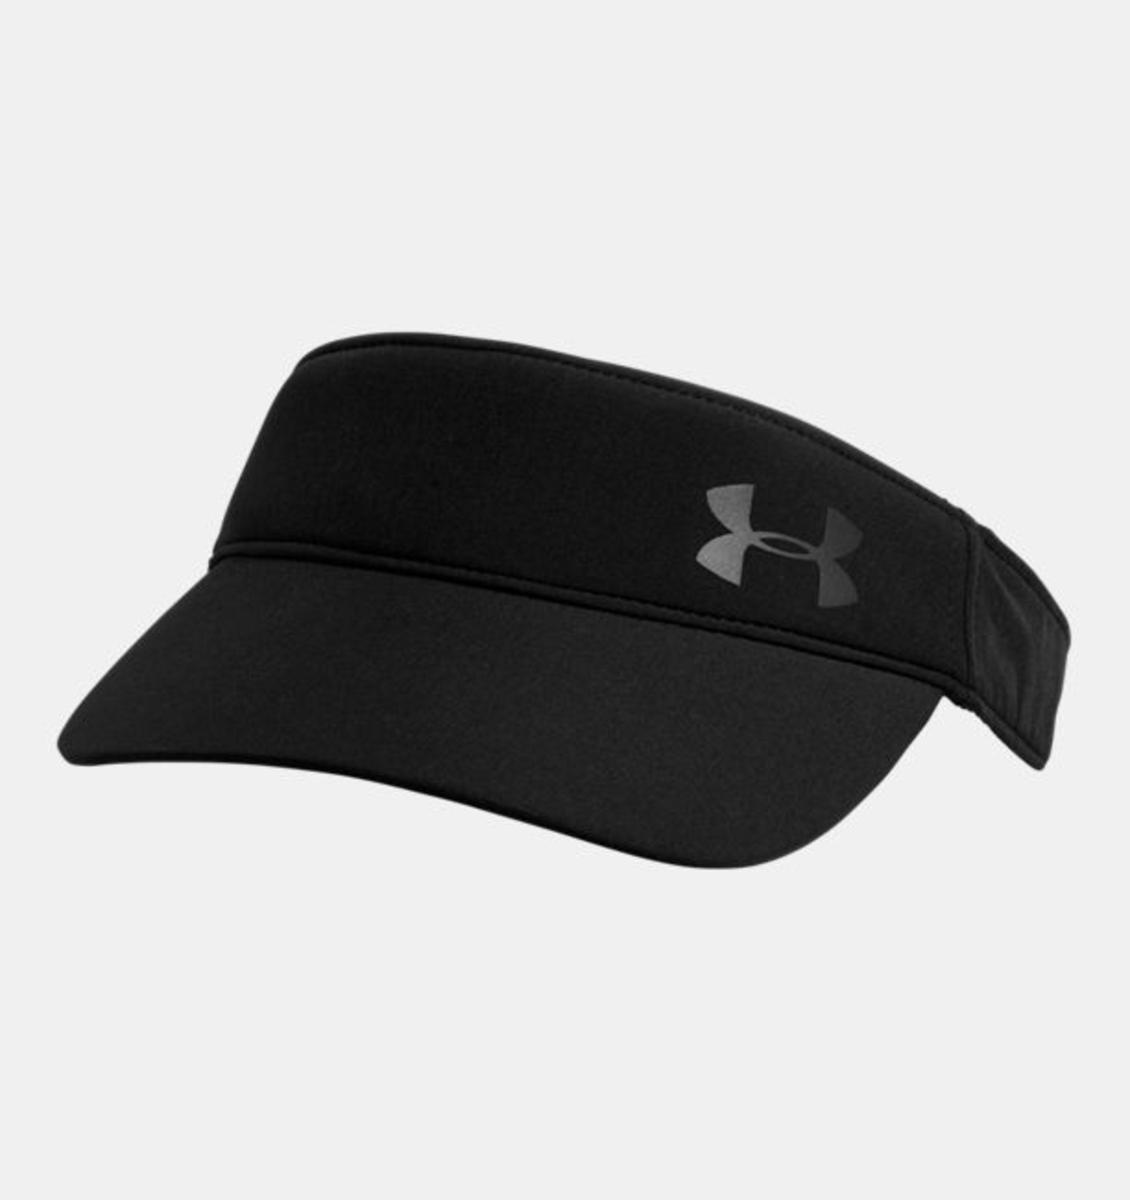 19.99 (The Warming Store). Under Armour Women s UA Fly Fast Visor 07a4b9f14fe2